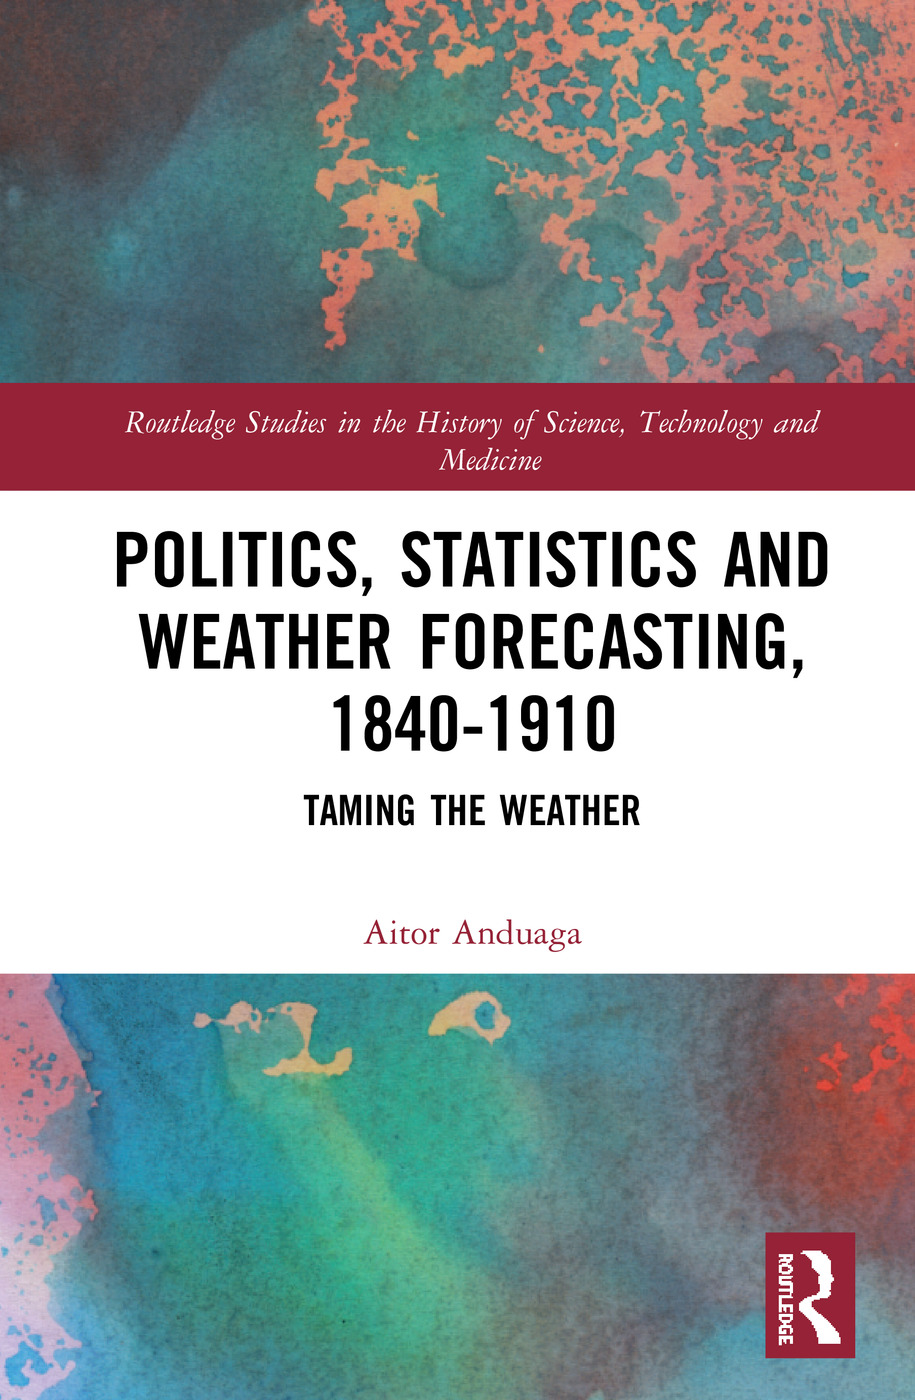 Politics, Statistics and Weather Forecasting, 1840-1910: Taming the Weather book cover